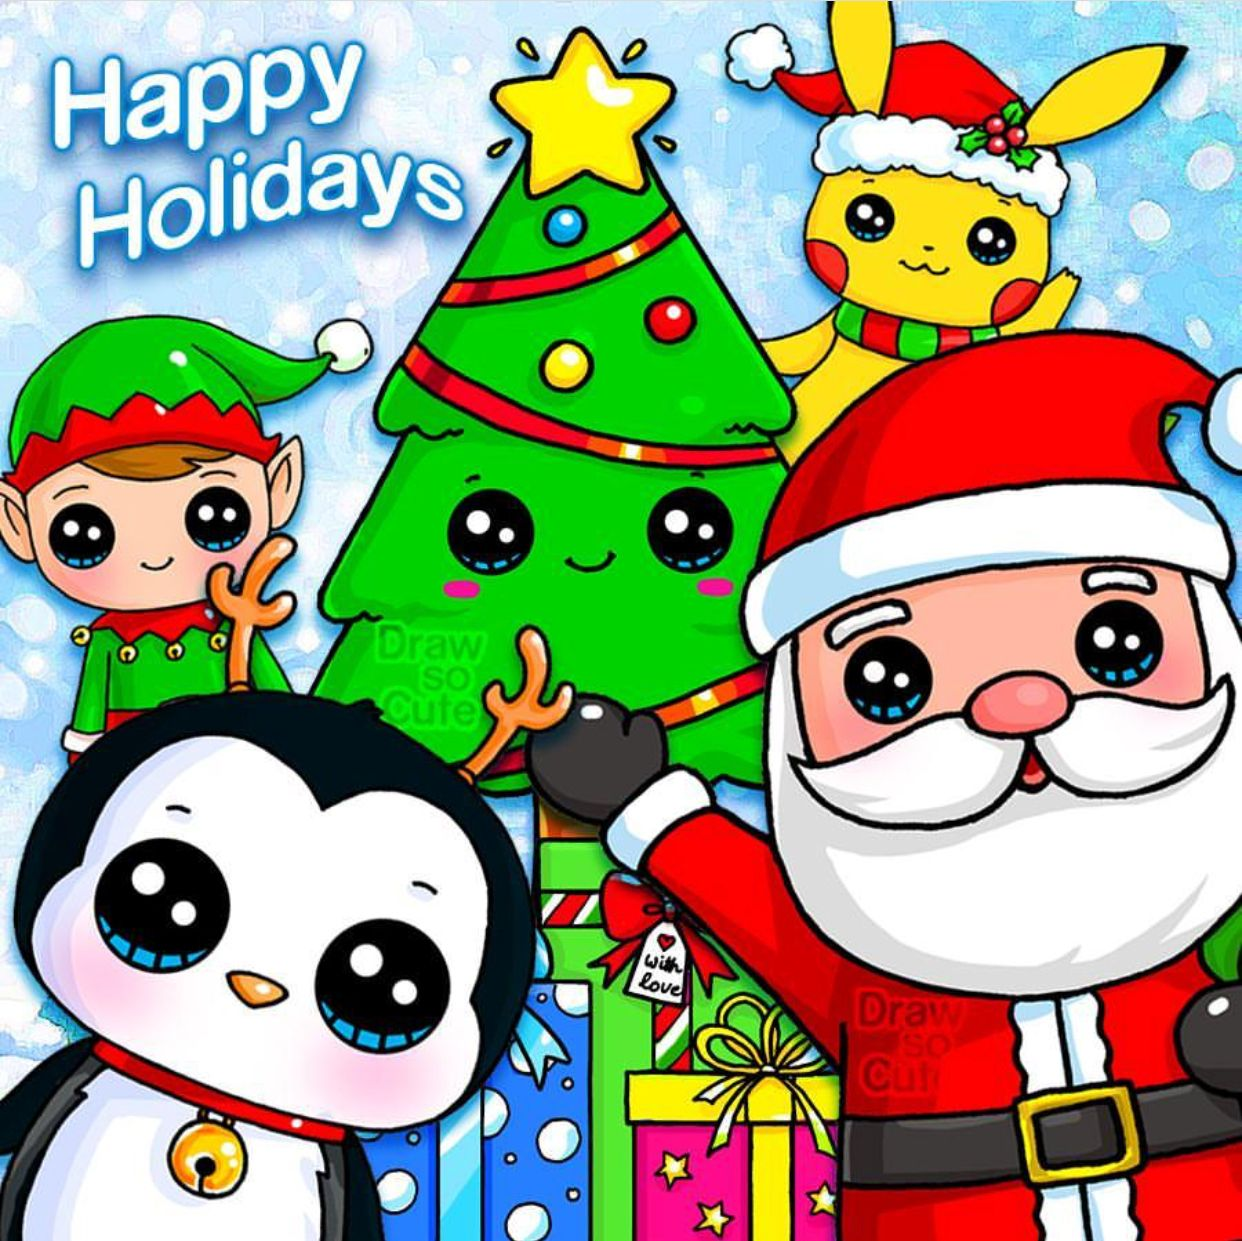 Happy Holidays Draw So Cute Cute Drawings Happy Holidays Kawaii